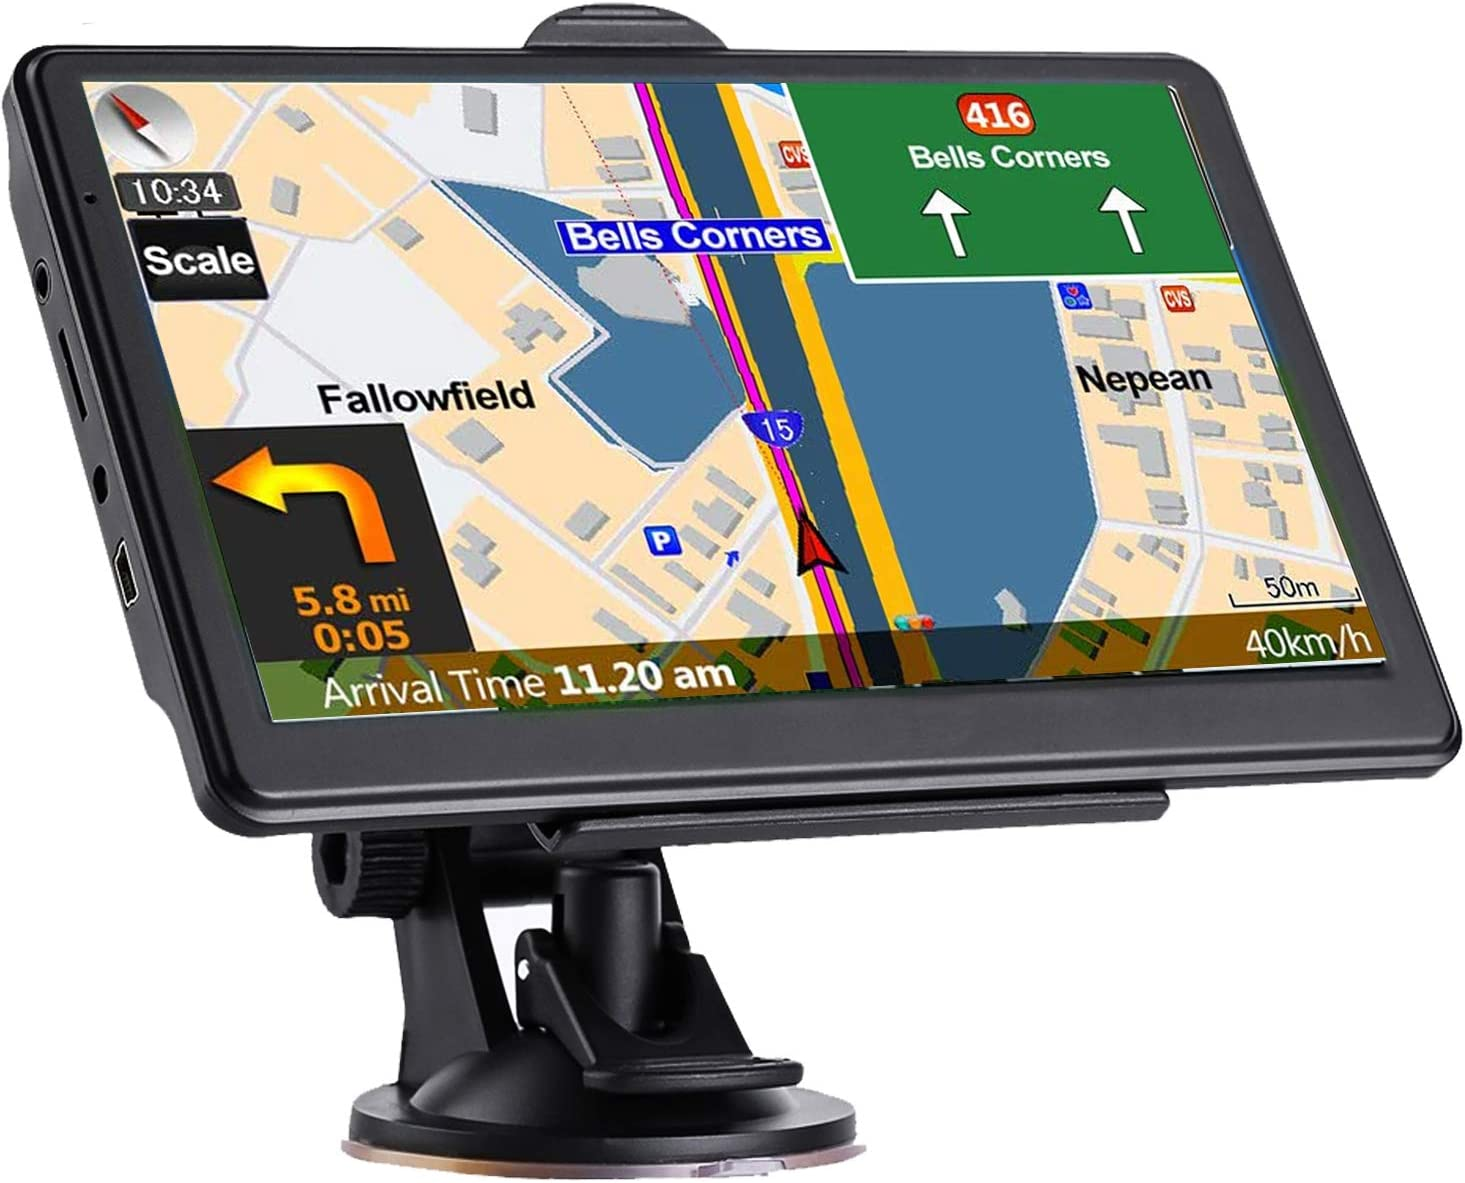 GPS Navigation for Car, Latest 2021 Map 7 inch Touch Screen Real Voice Spoken Turn-by-Turn Direction Reminding Navigation System for Cars, Vehicle GPS Satellite Navigator with